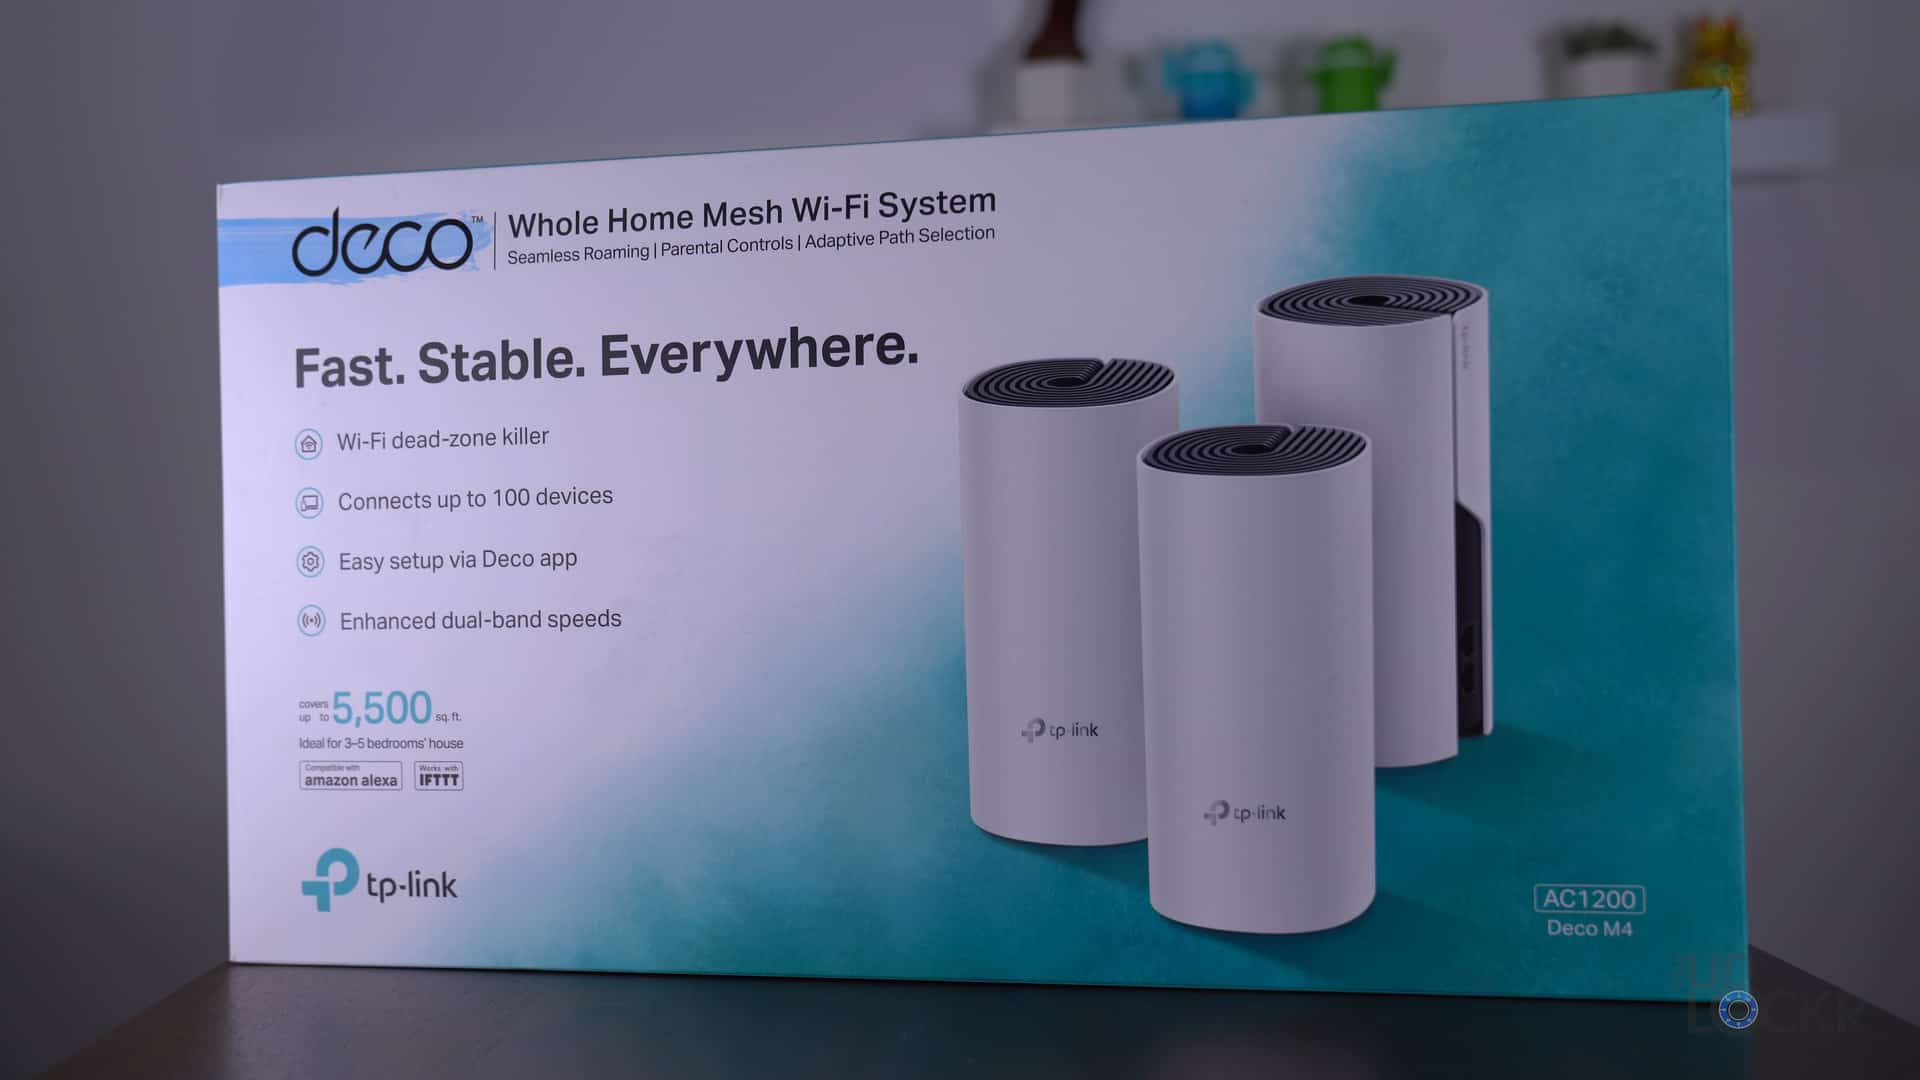 The Best Mesh WiFi Systems For Every Scenario